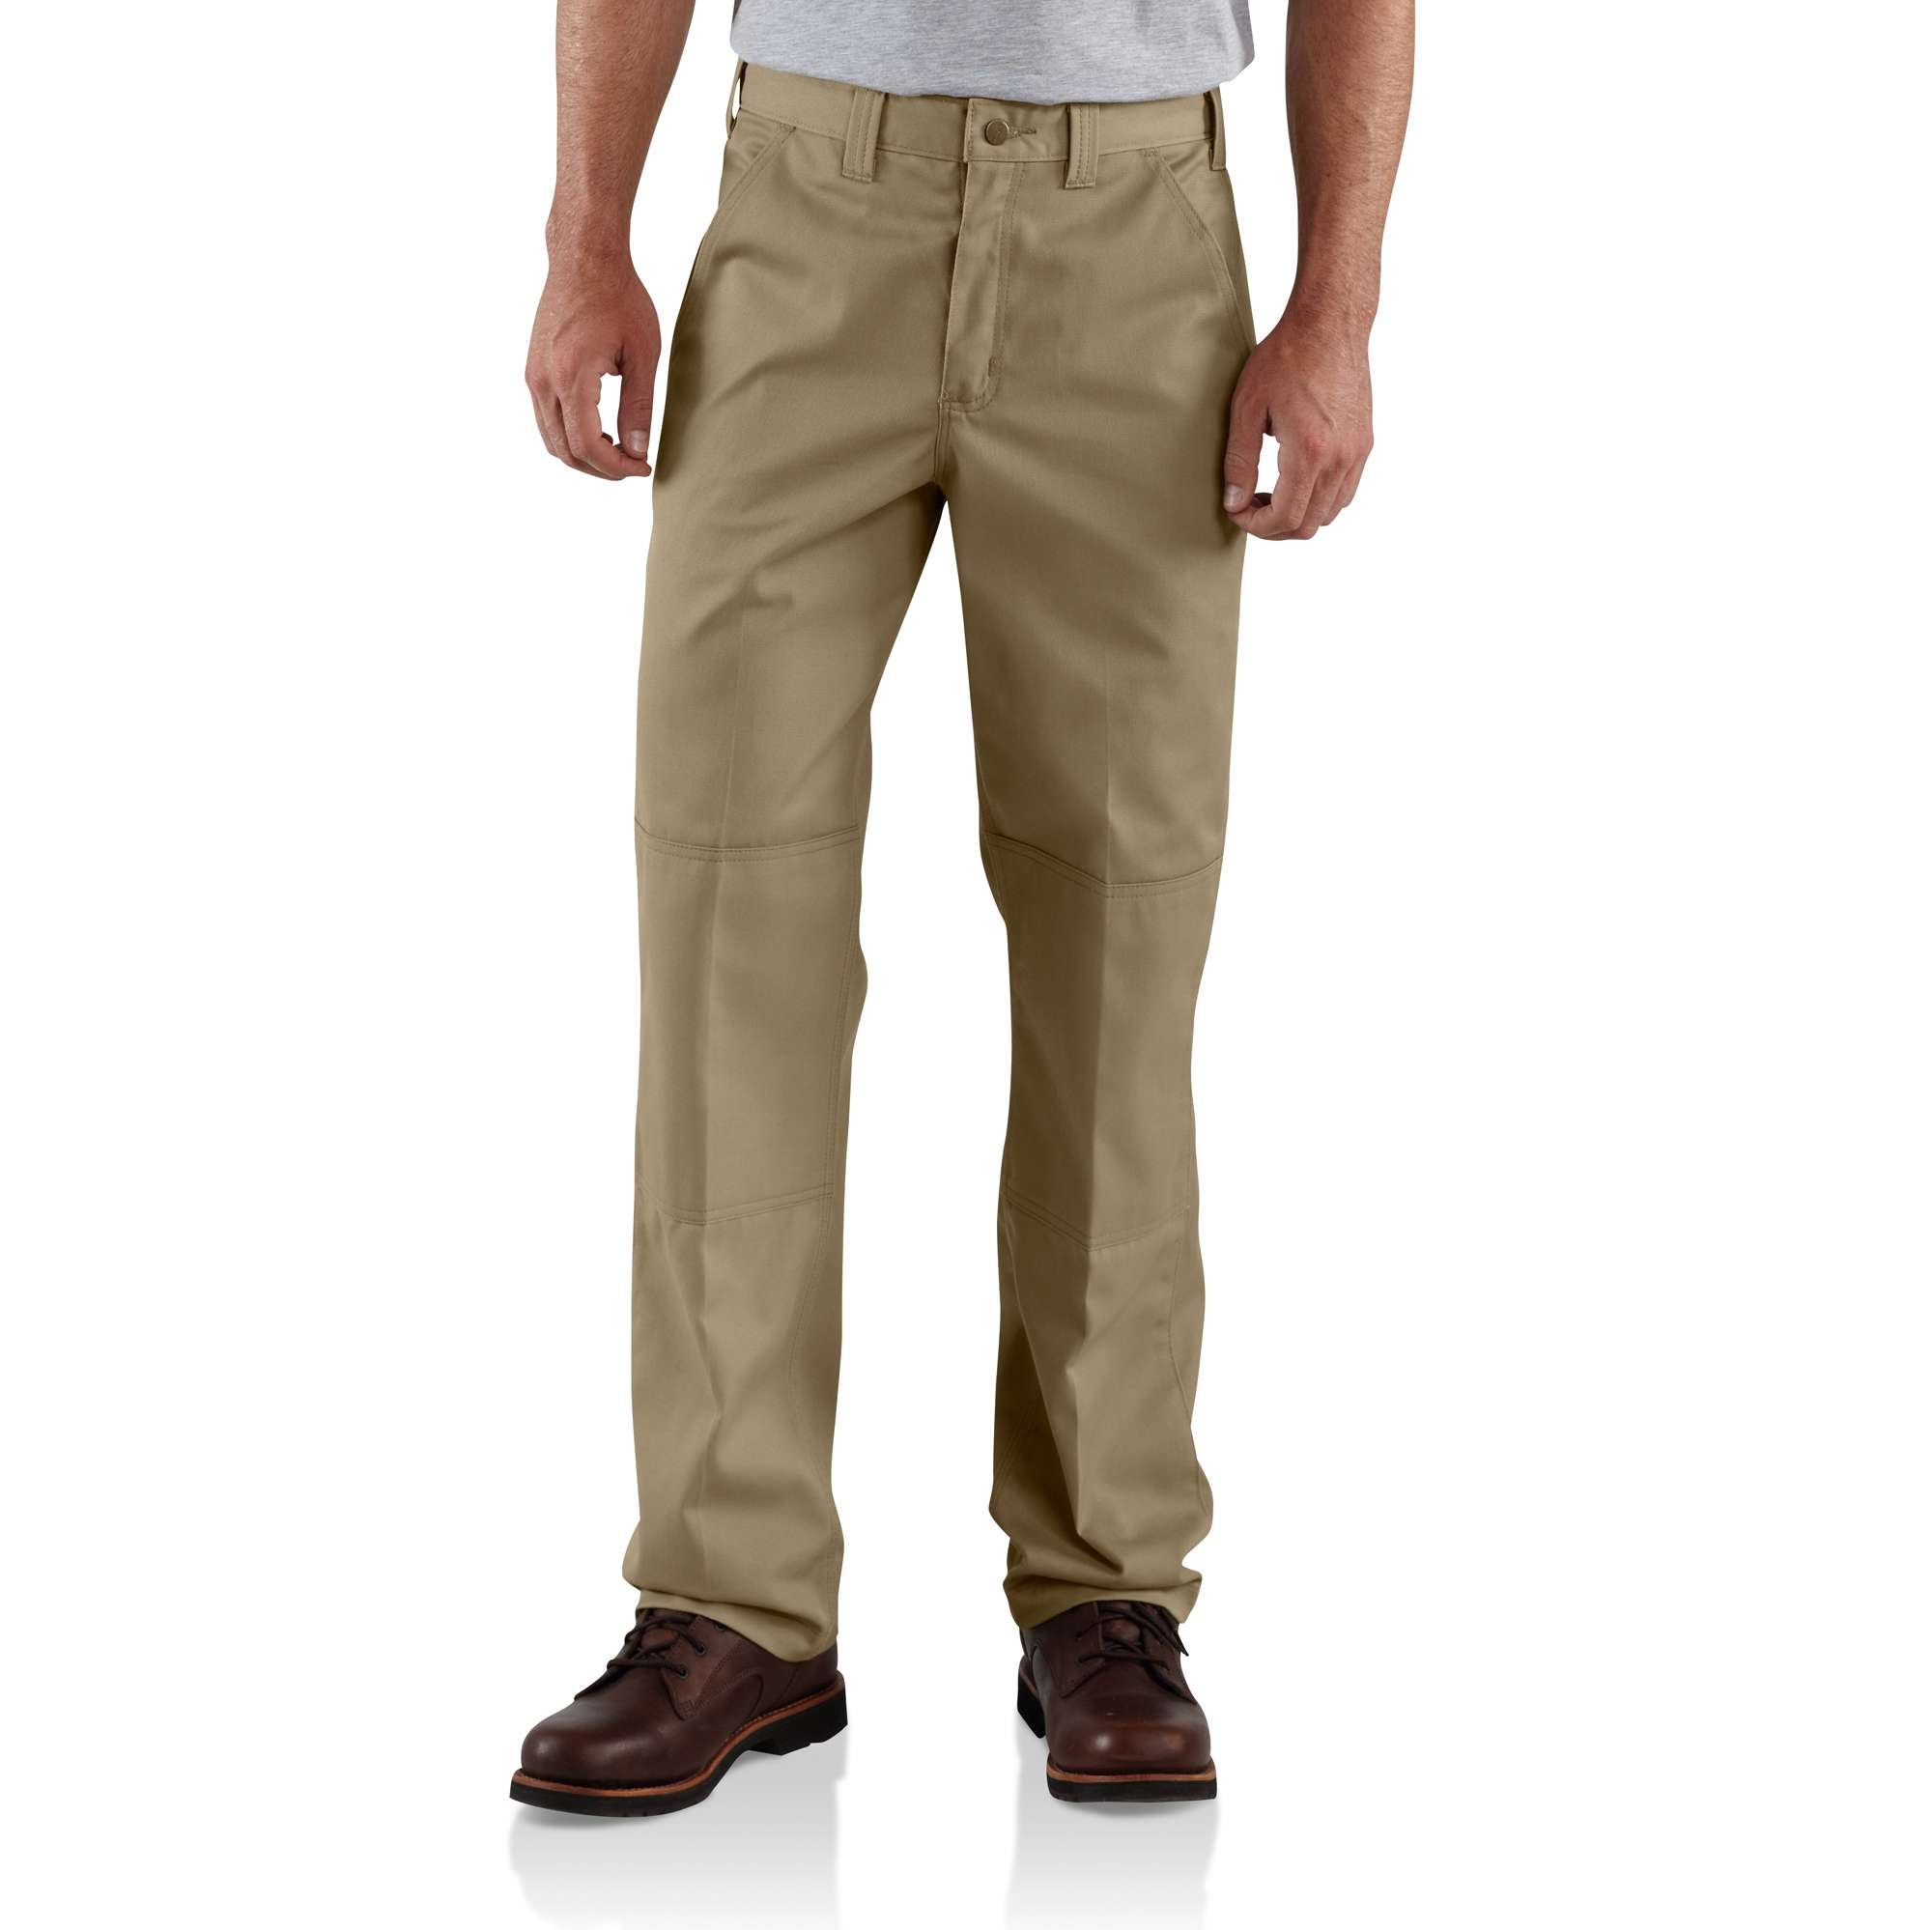 Carhartt Twill Double-Knee Work Pant